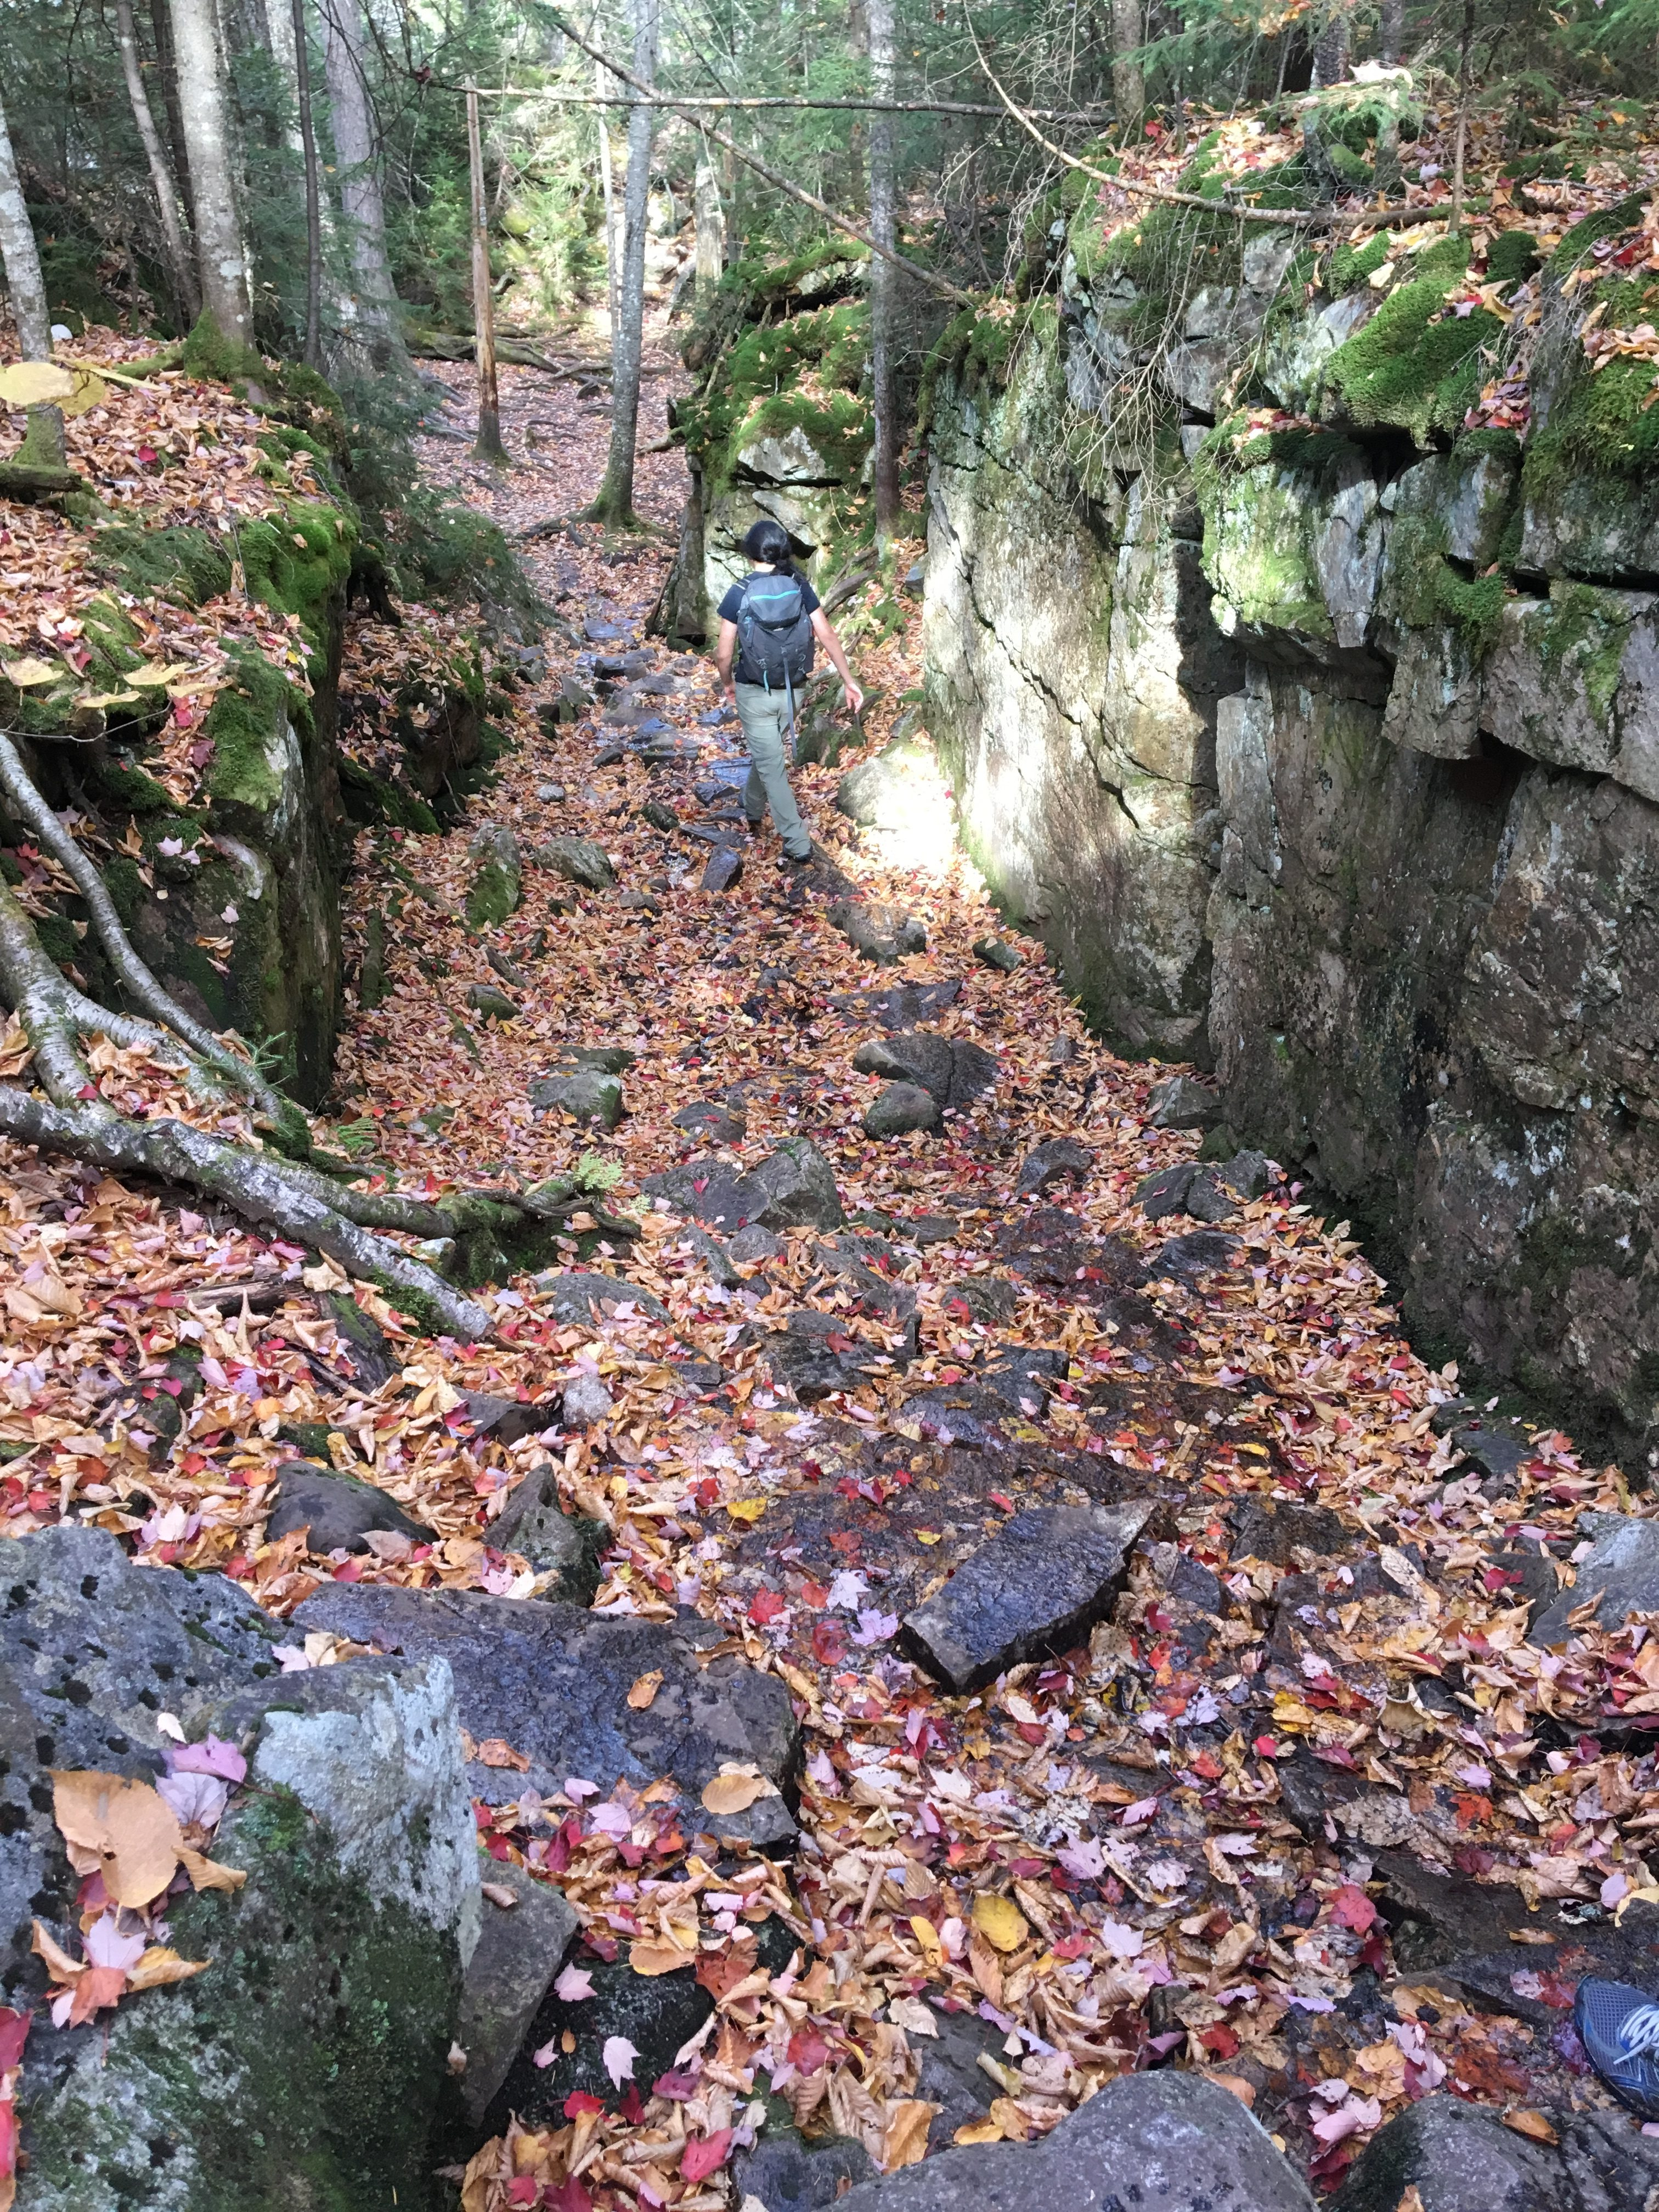 What used to be a stream: a large hollow between two rocky cliffs. It is dotted with some rocks, but mostly is full of red leaves.